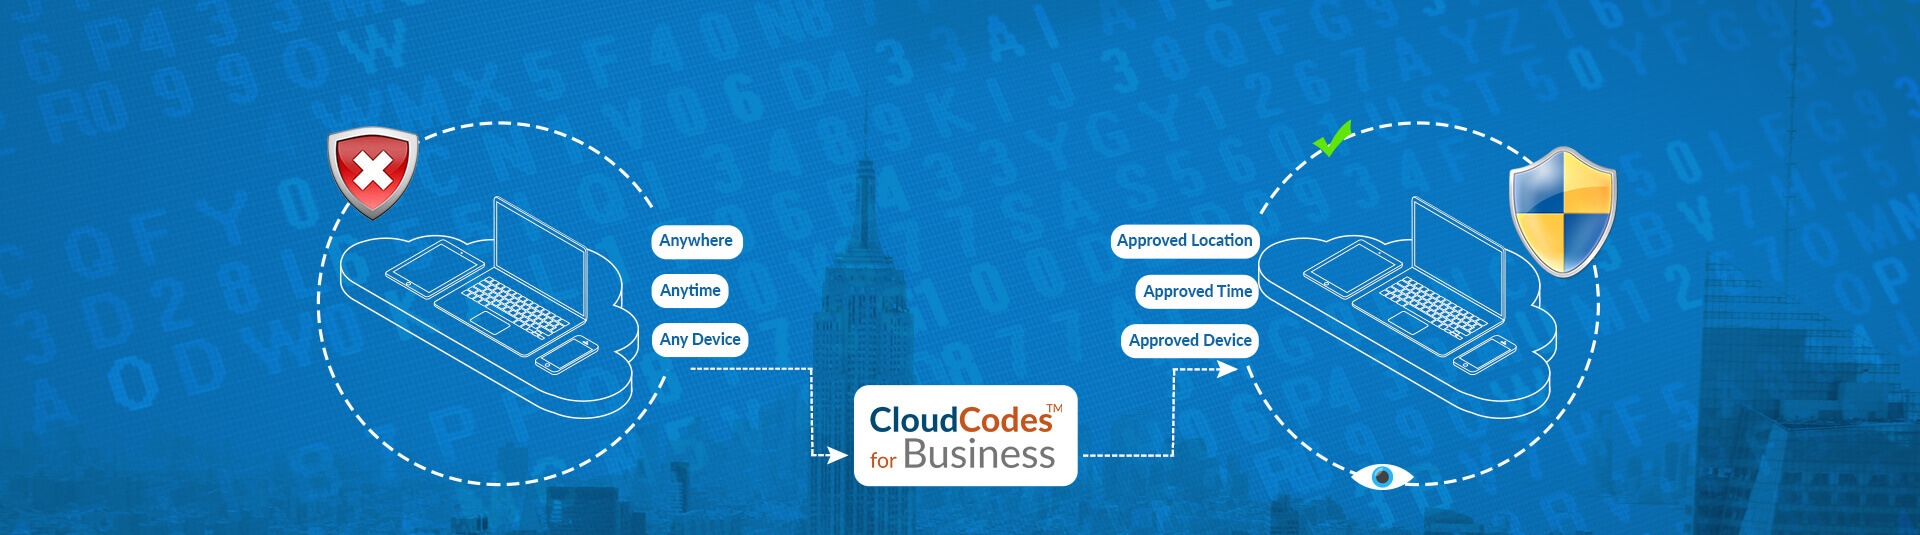 CloudCodes CASB Solutions for Your Enterprise Data